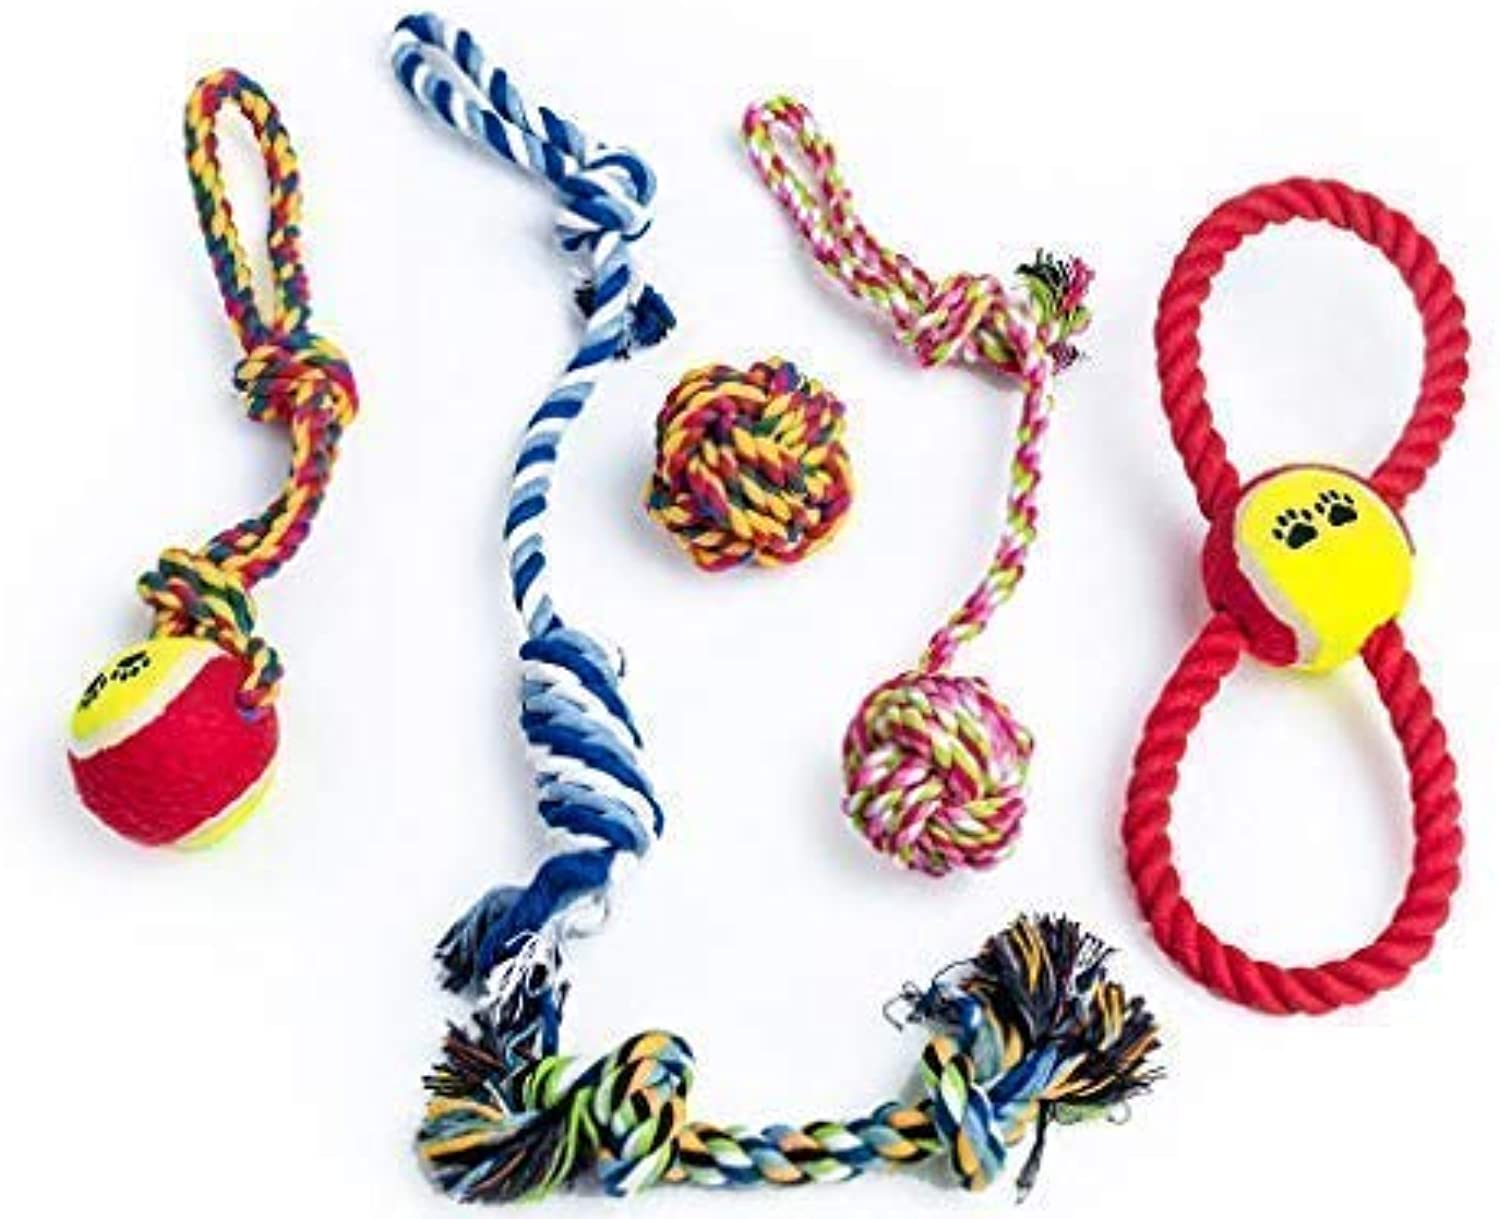 GUNTER S &J Chuppy Chew Toys 6 Pack Dog Rope Tug Toy Tough Dog Toys for Puppy &T Media Dog Playtime Cleaning Teeth